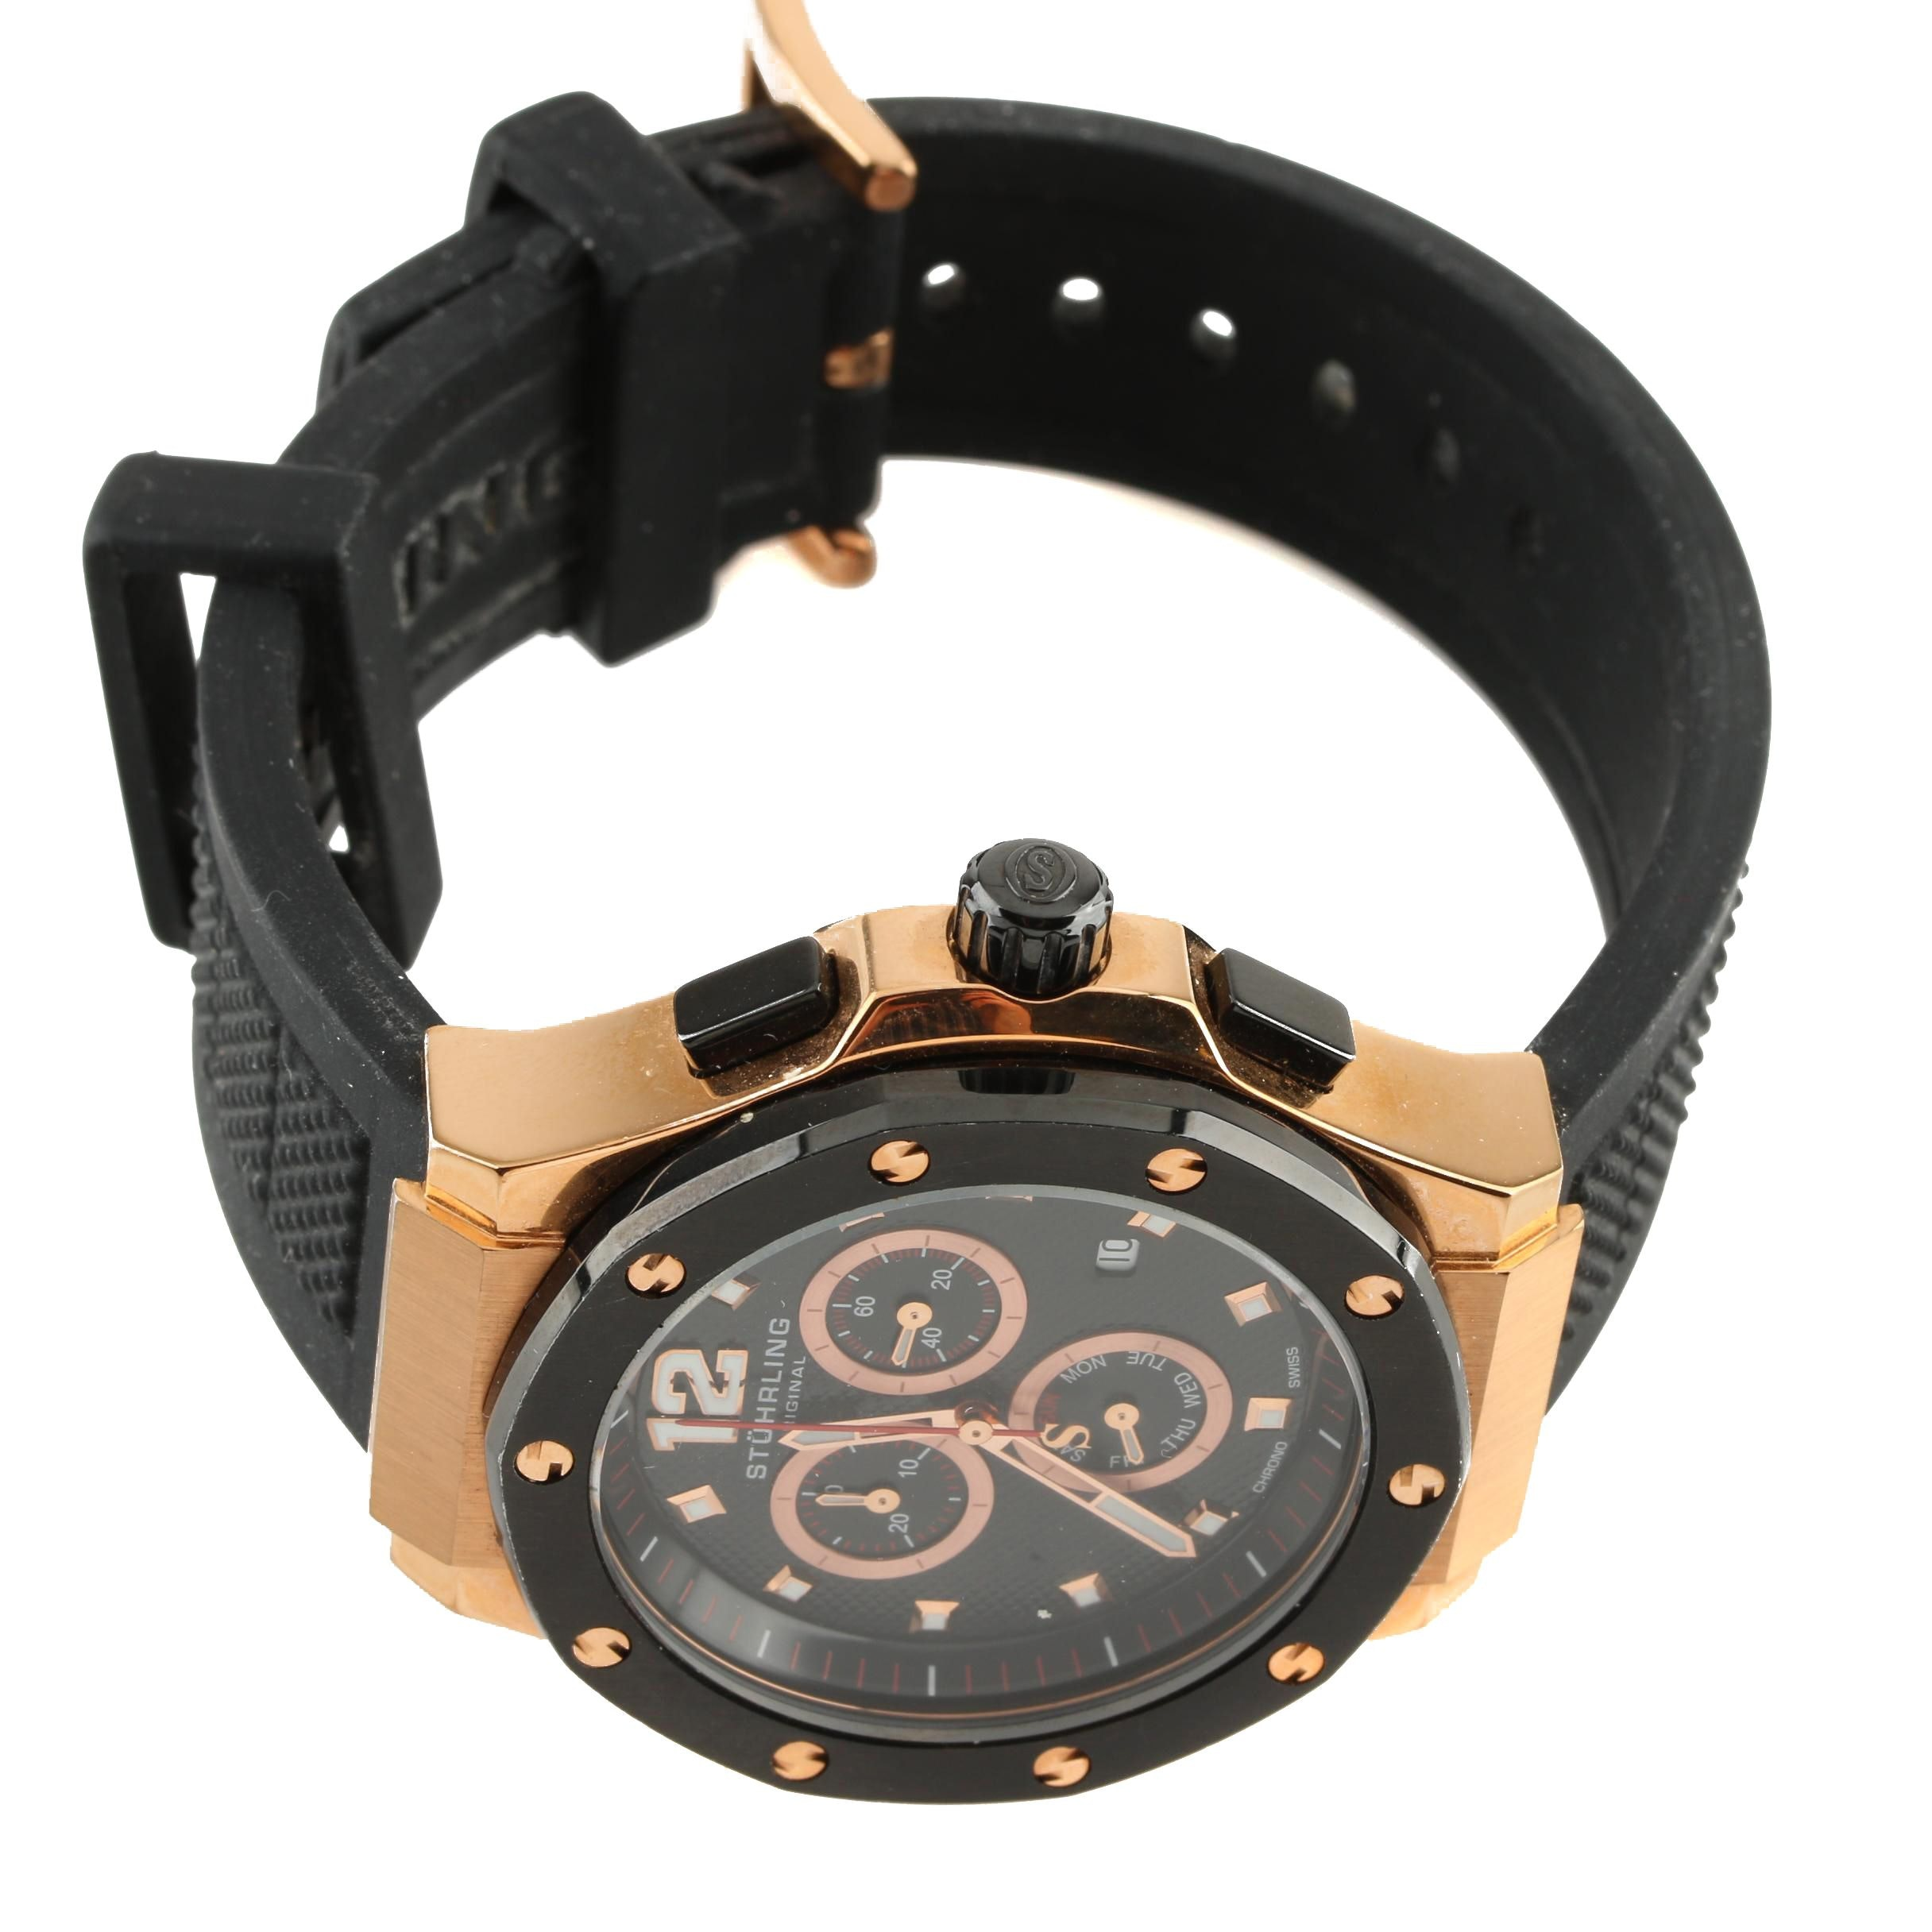 Stührling Original Rose Tone Stainless Steel and Rubber Chronograph Wristwatch